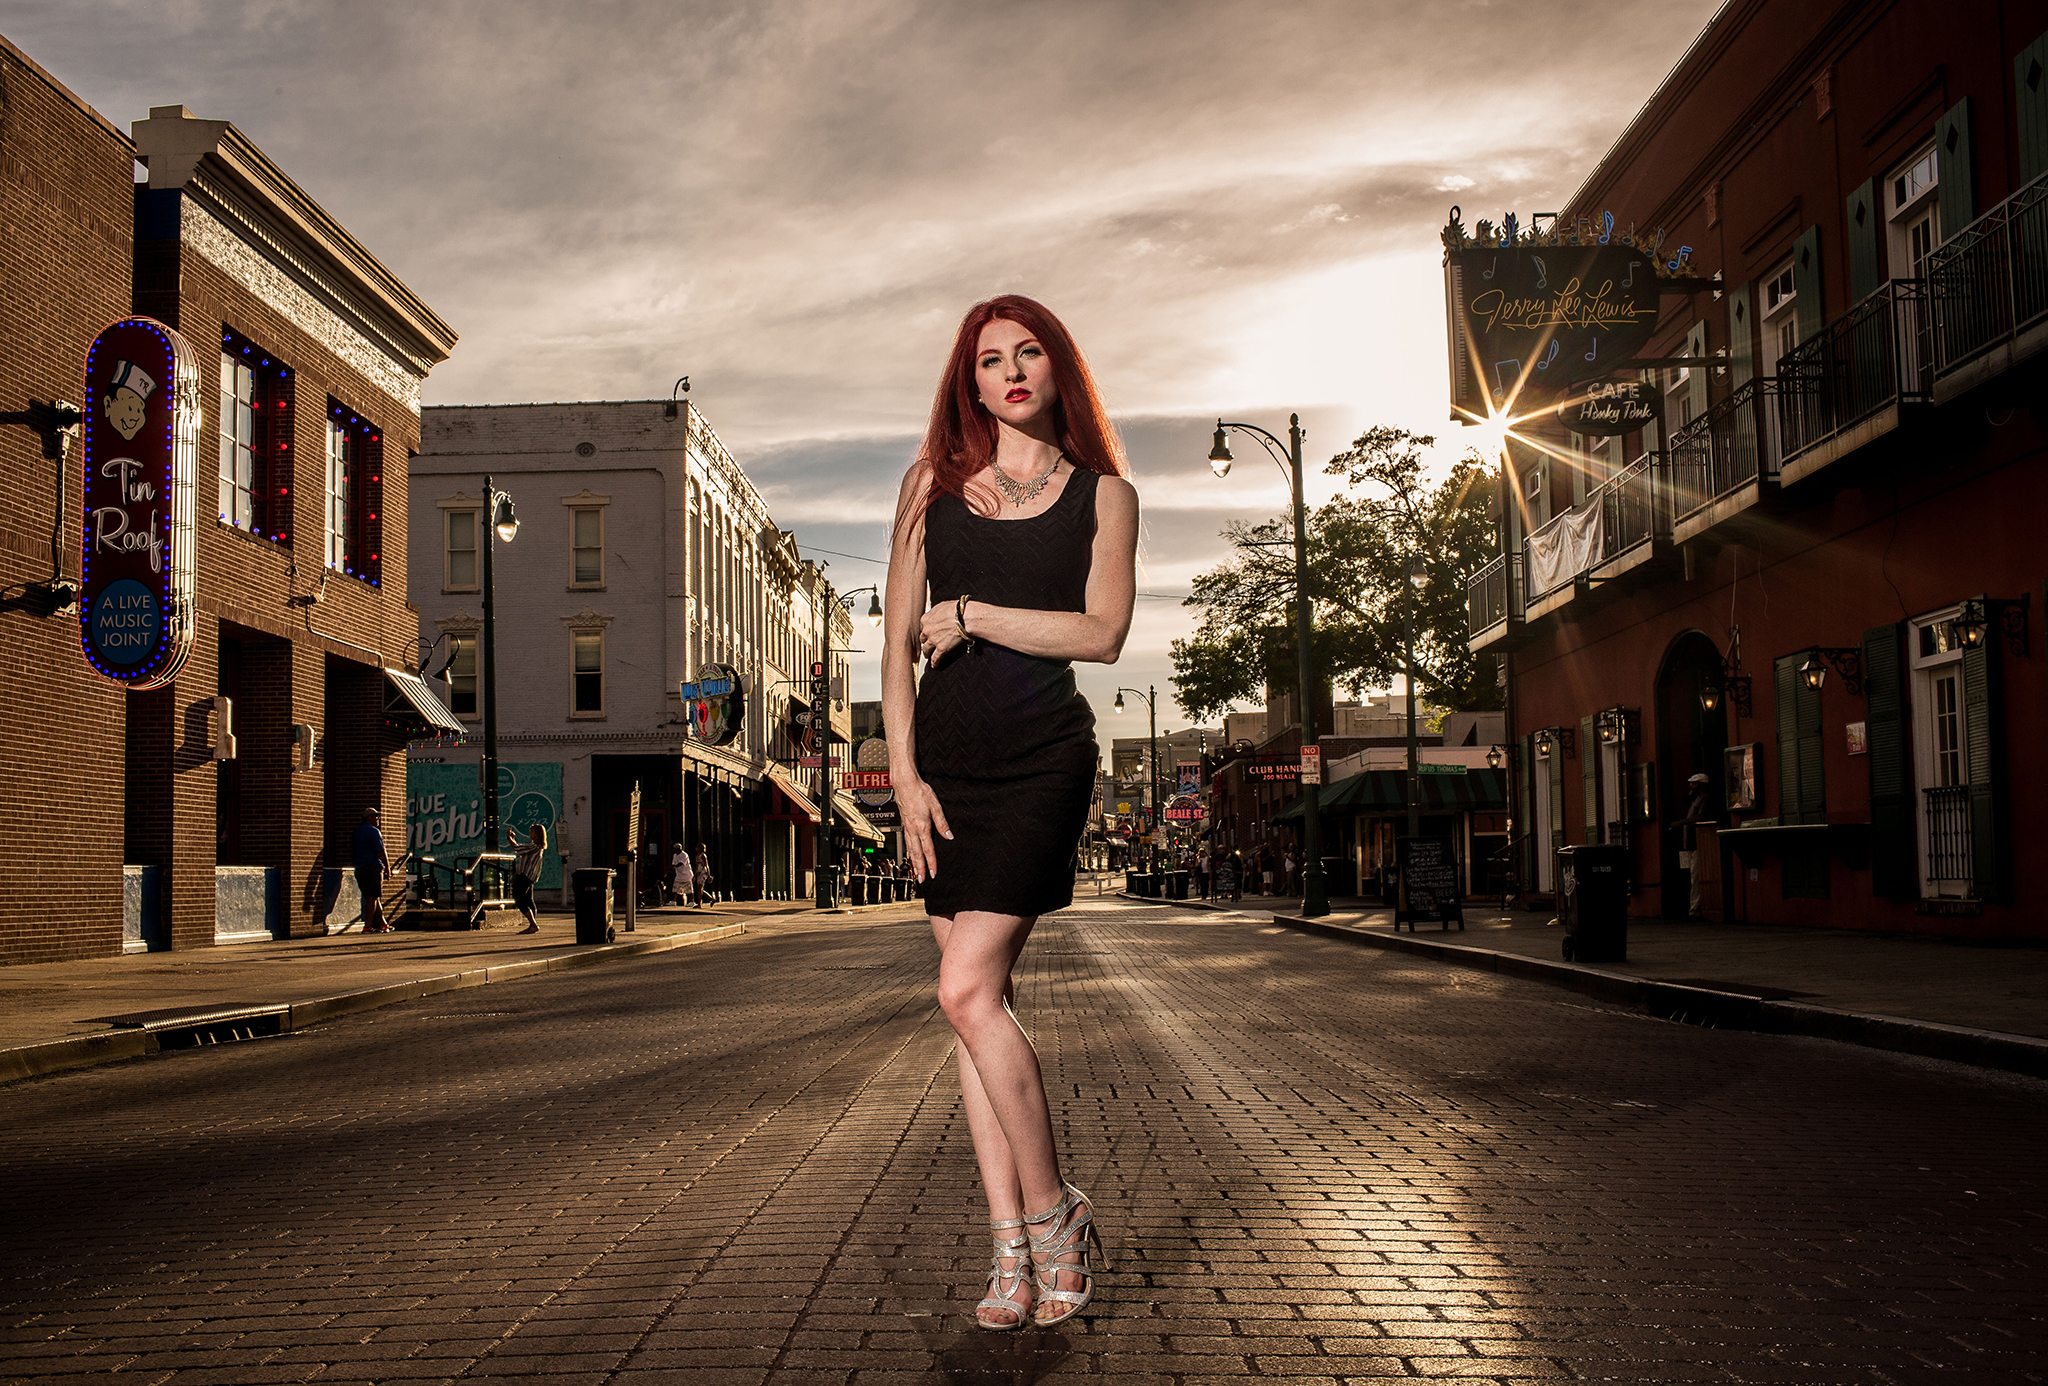 Beale Street - I recently photographed this portrait at the famous Beale Street of Memphis. There are some amazing spots in and around this street that photographers can use!